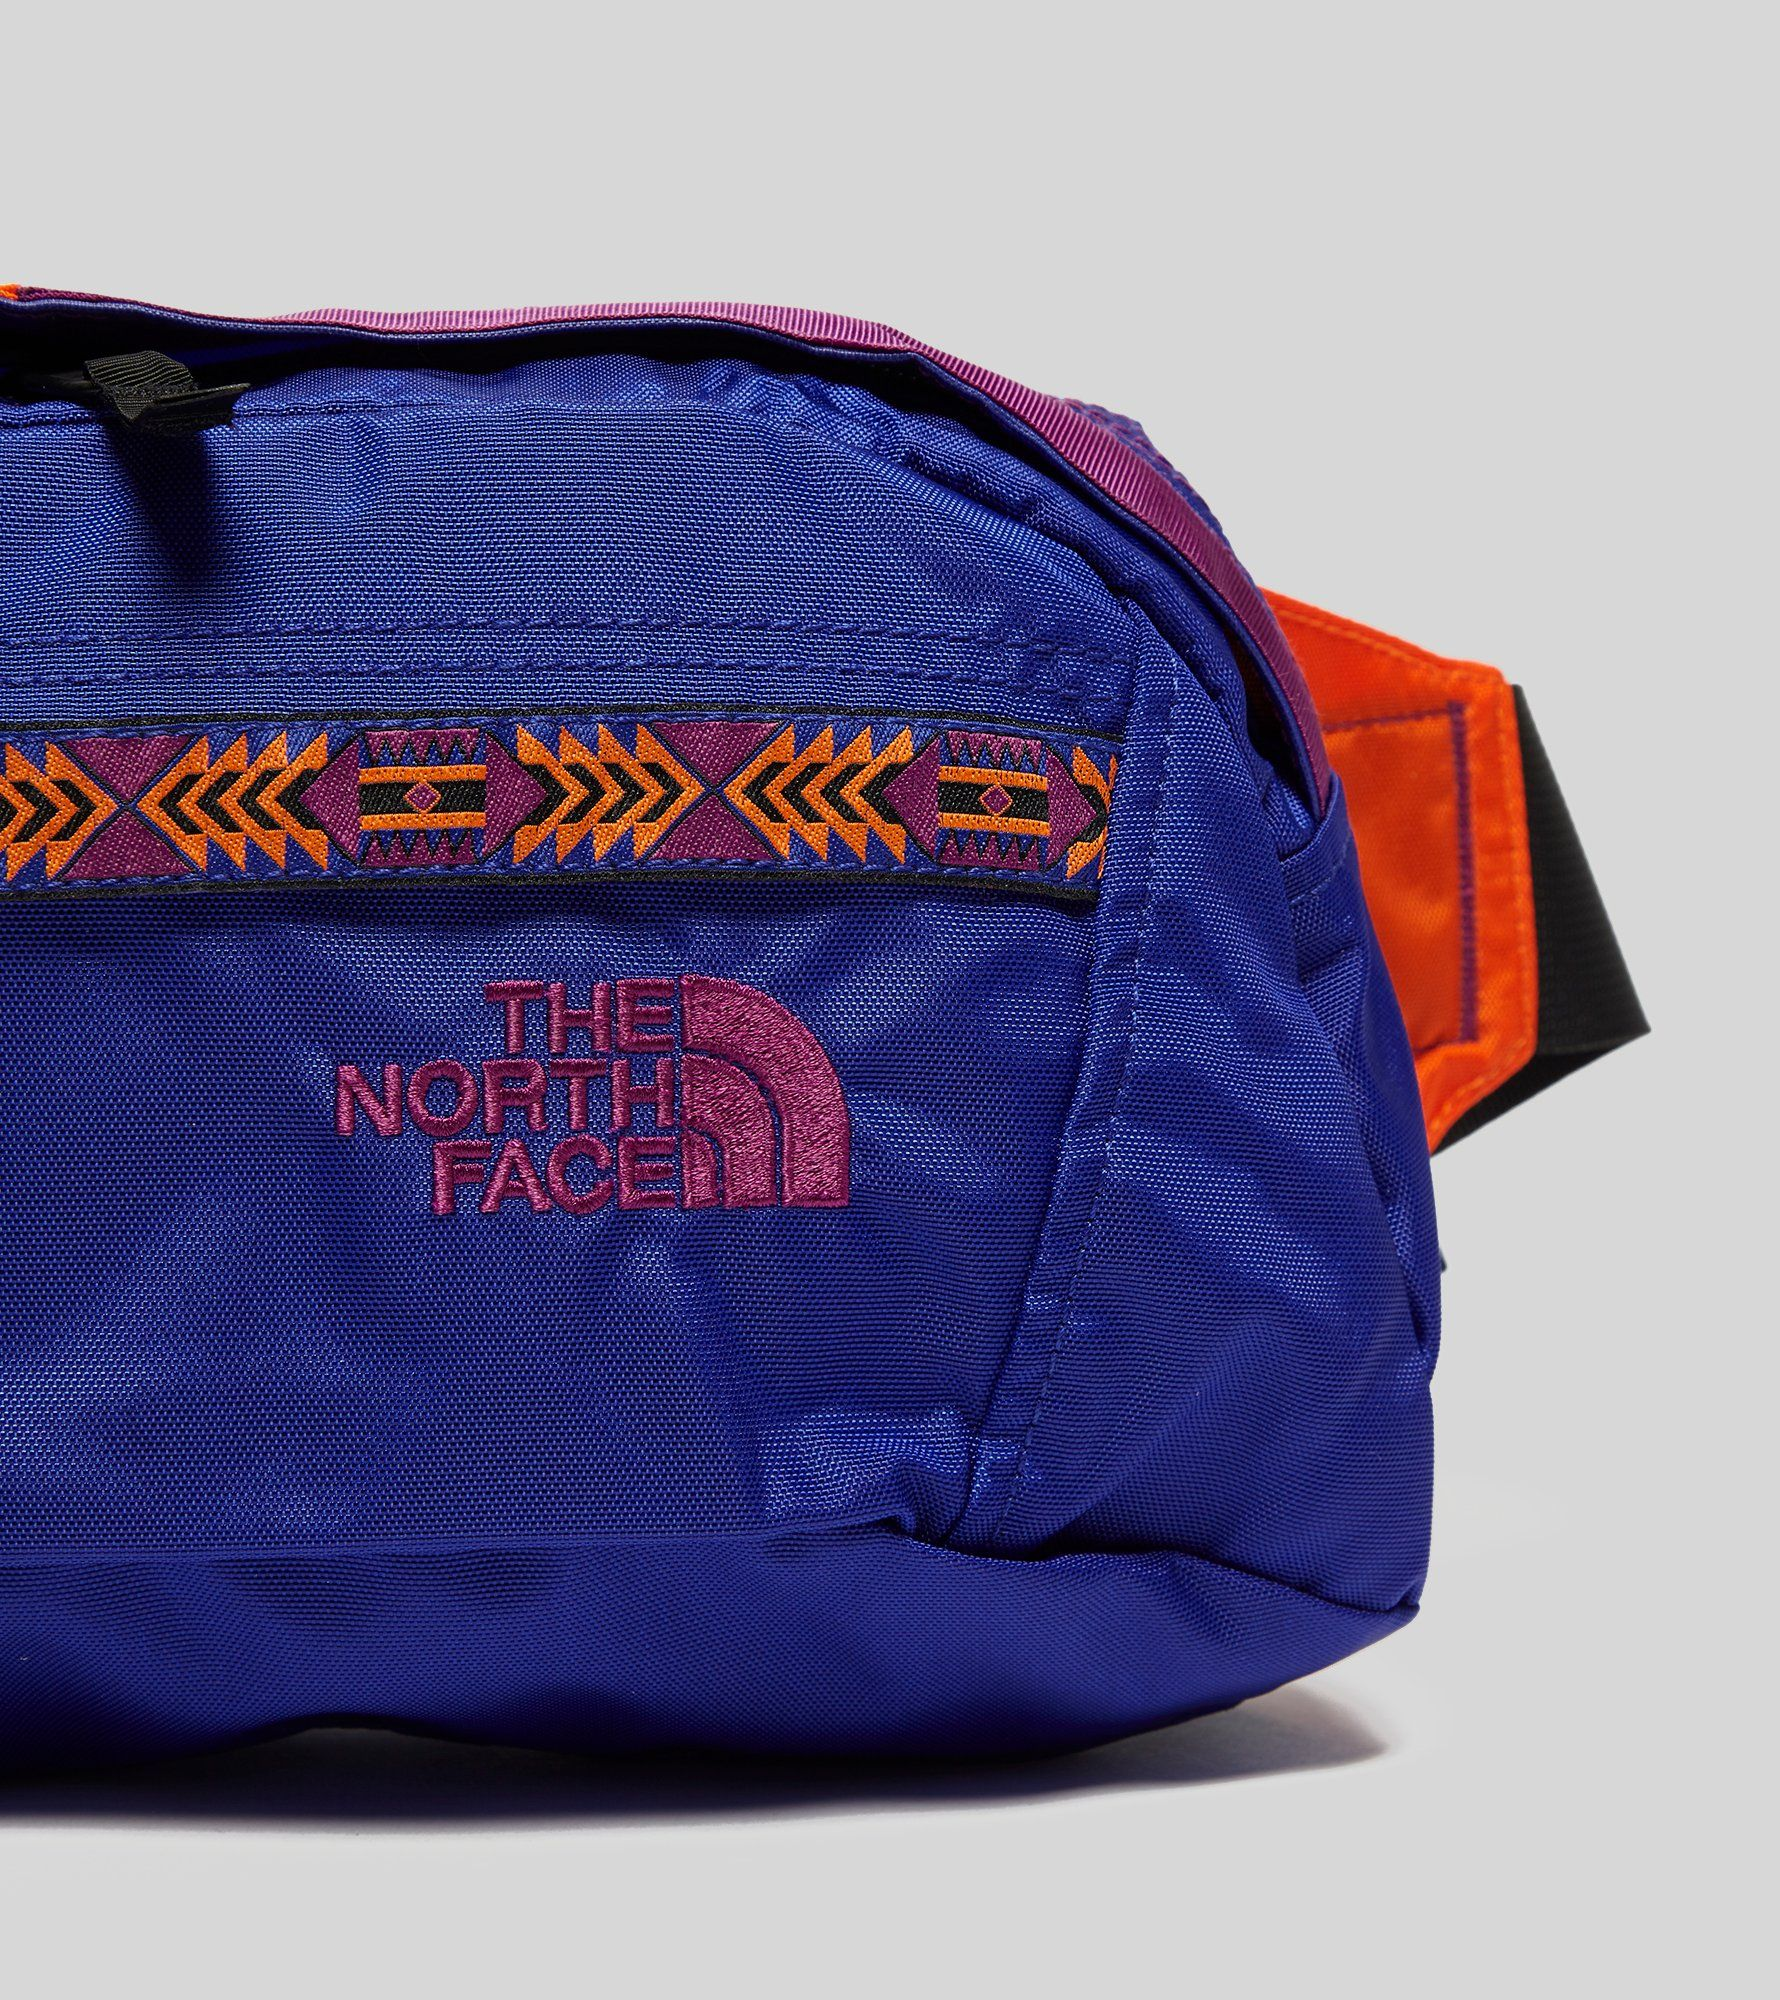 The North Face '92 Rage Waist Bag